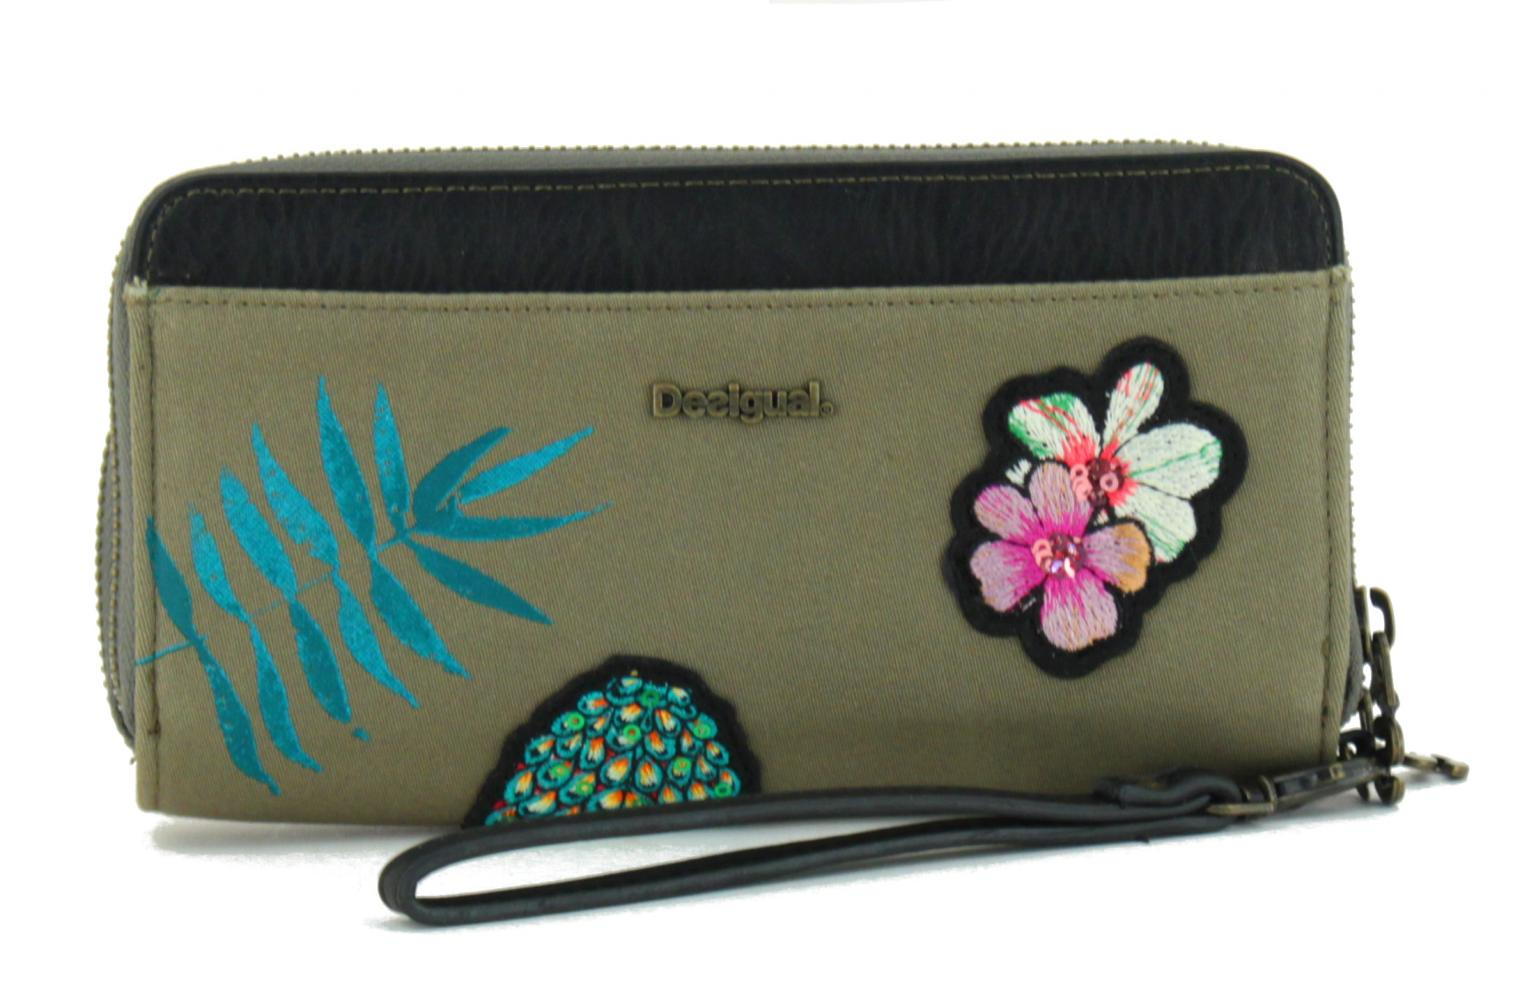 desigual geldbörse two levels pinday ananas blume - bags & more